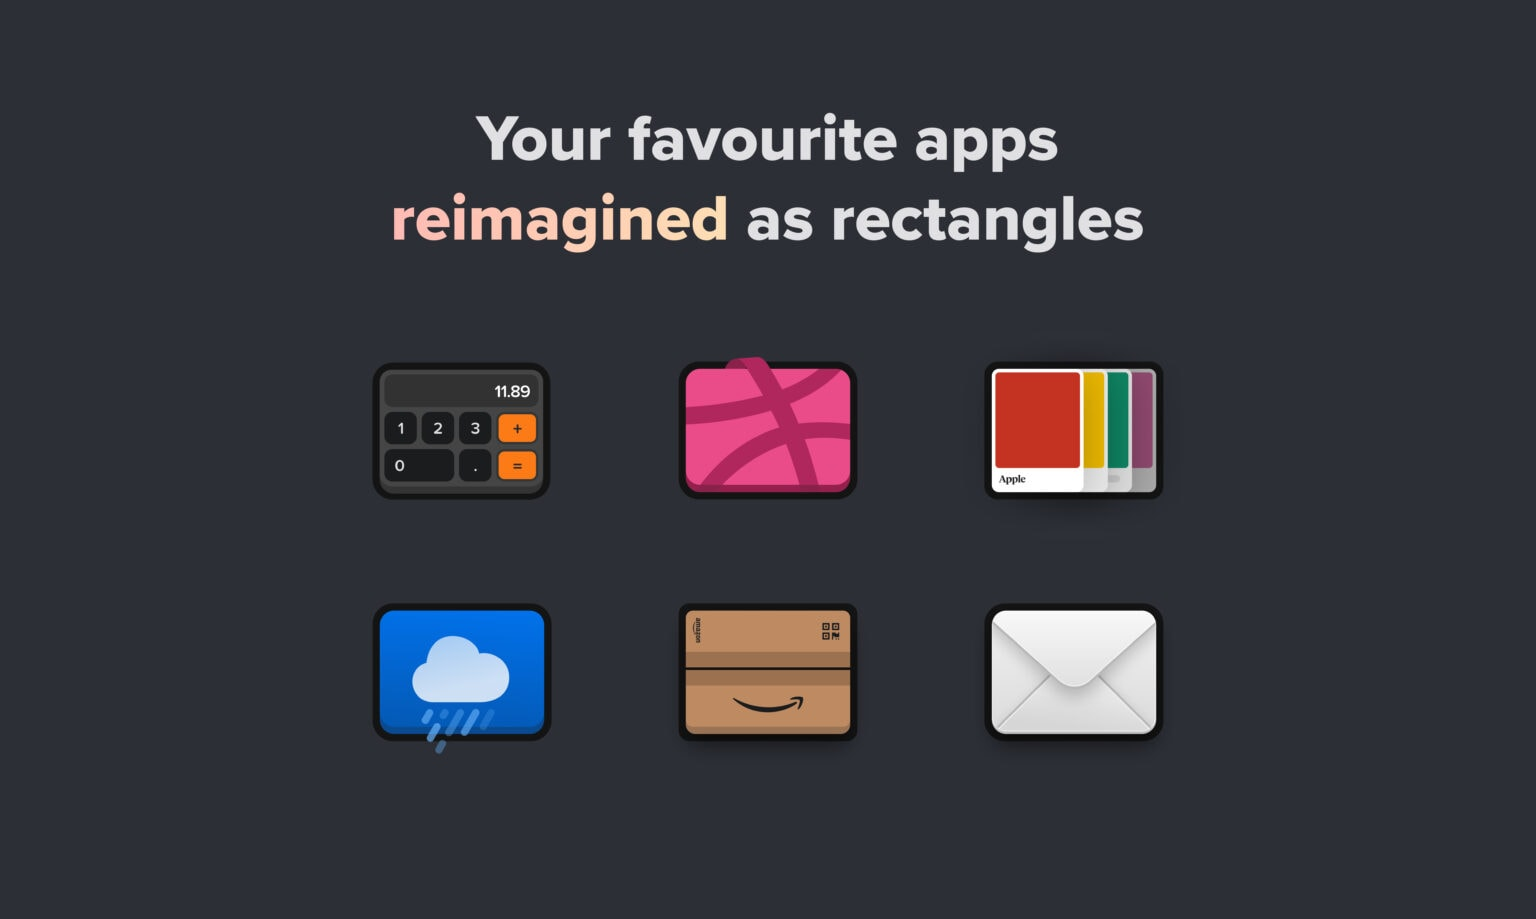 Reimagined icons on iOS 14